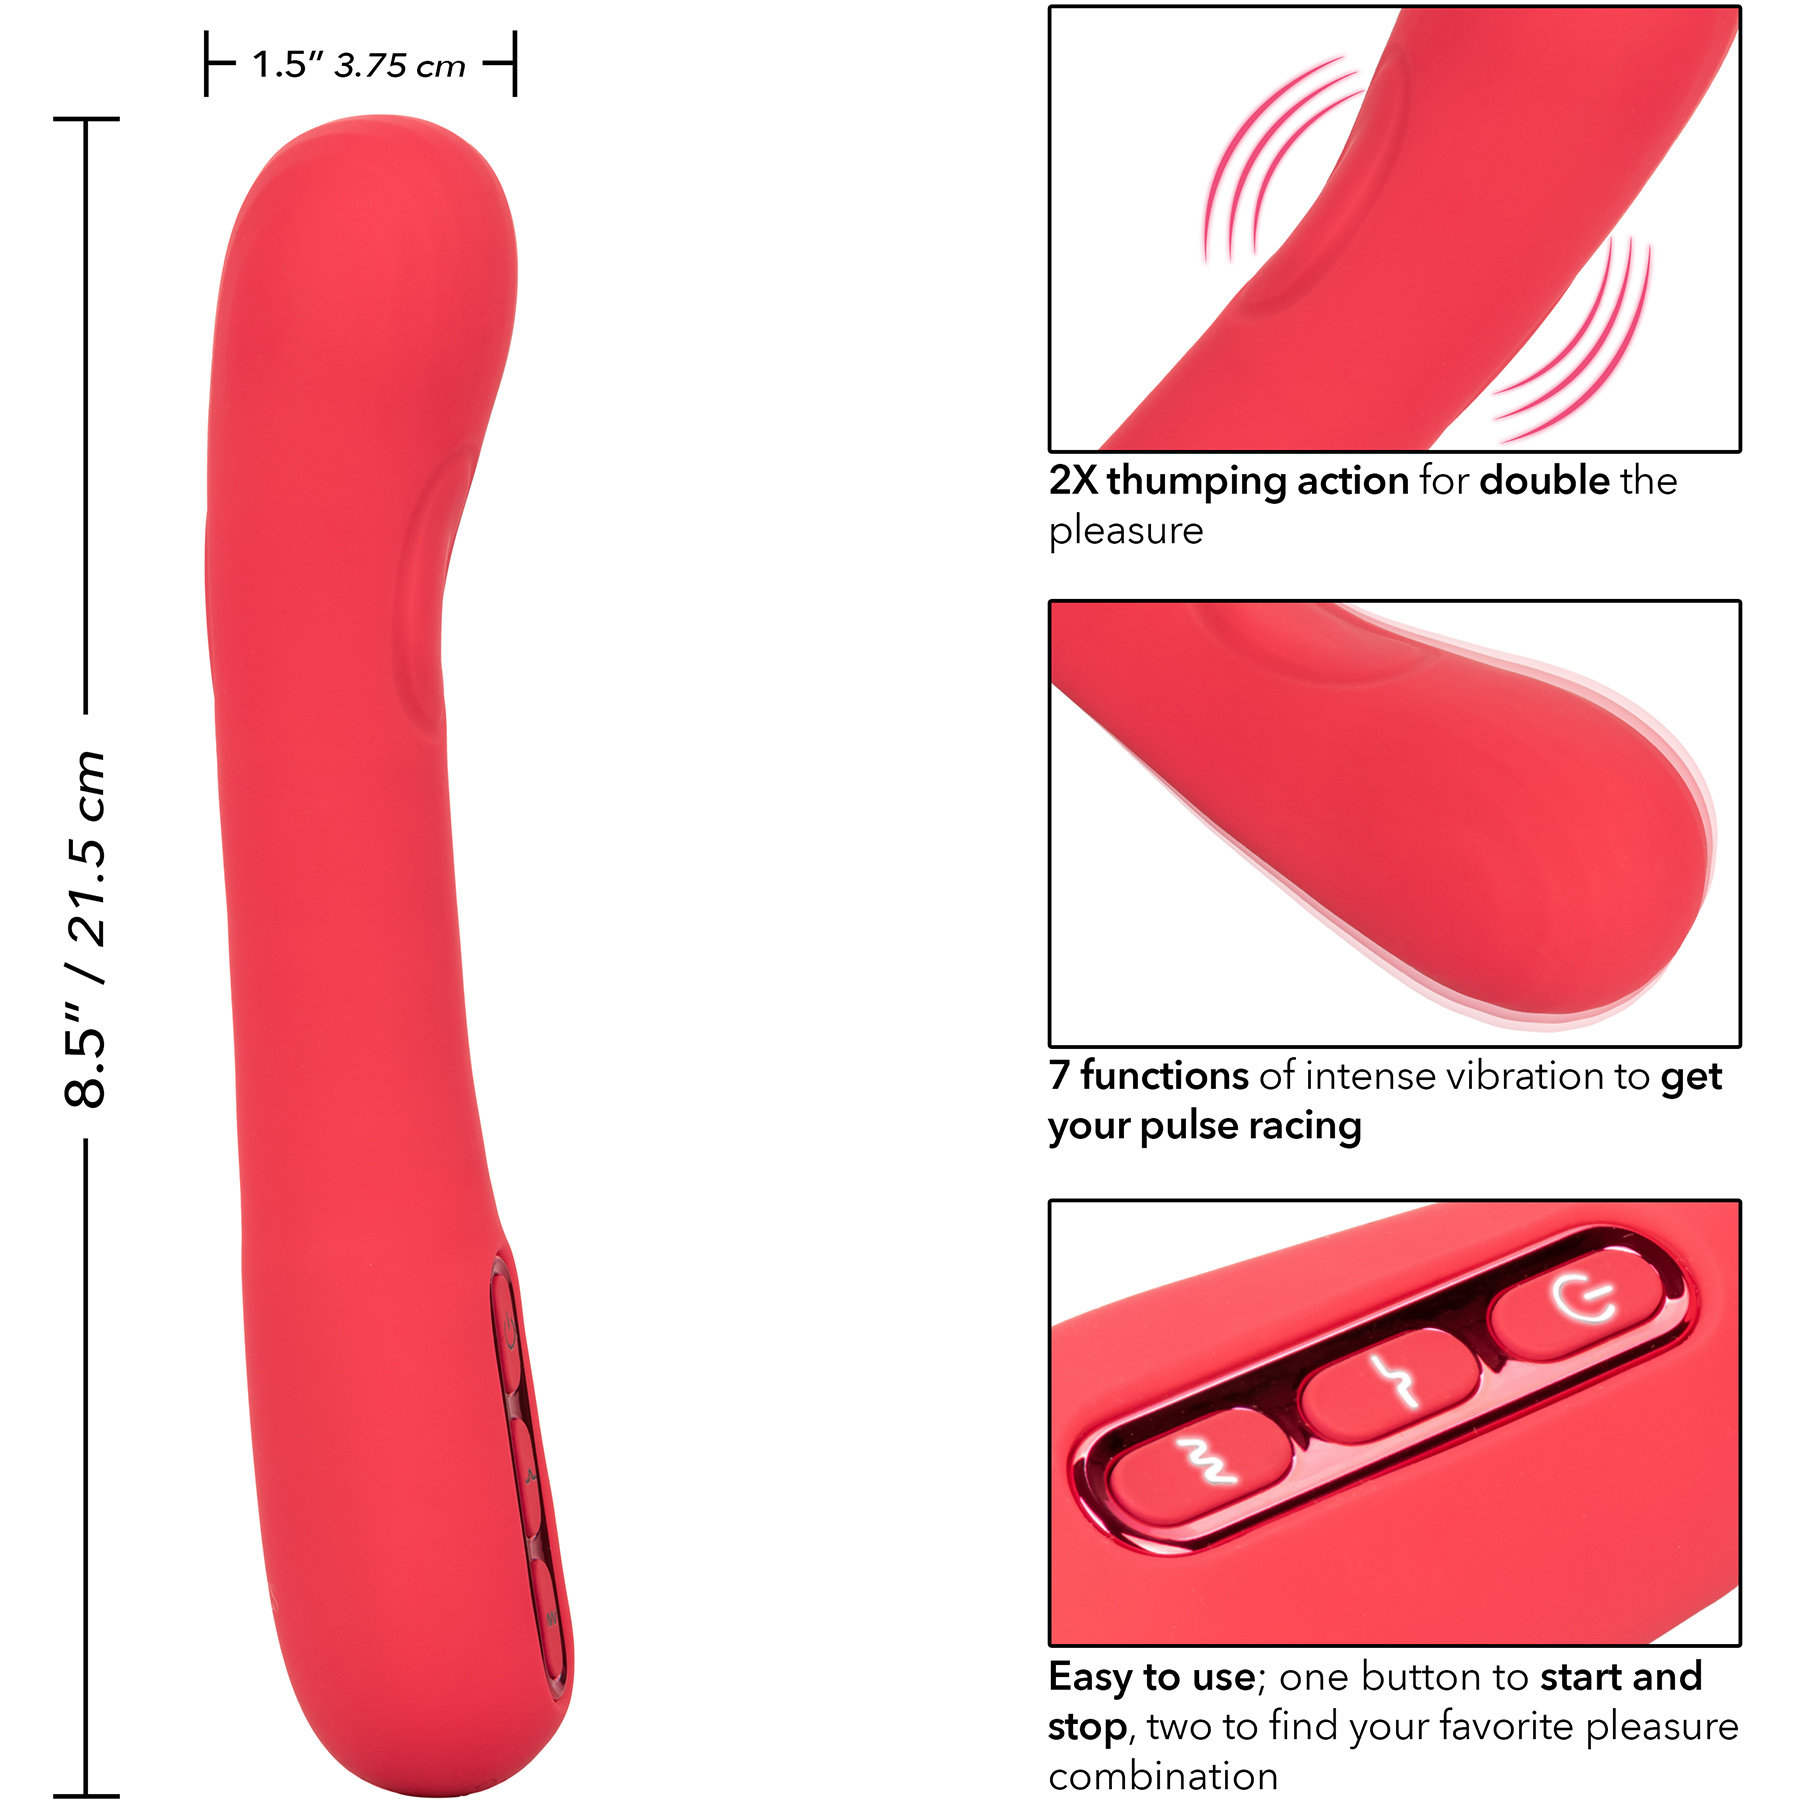 Throb Thumper Rechargeable Waterproof Silicone Vibrator - Measurements